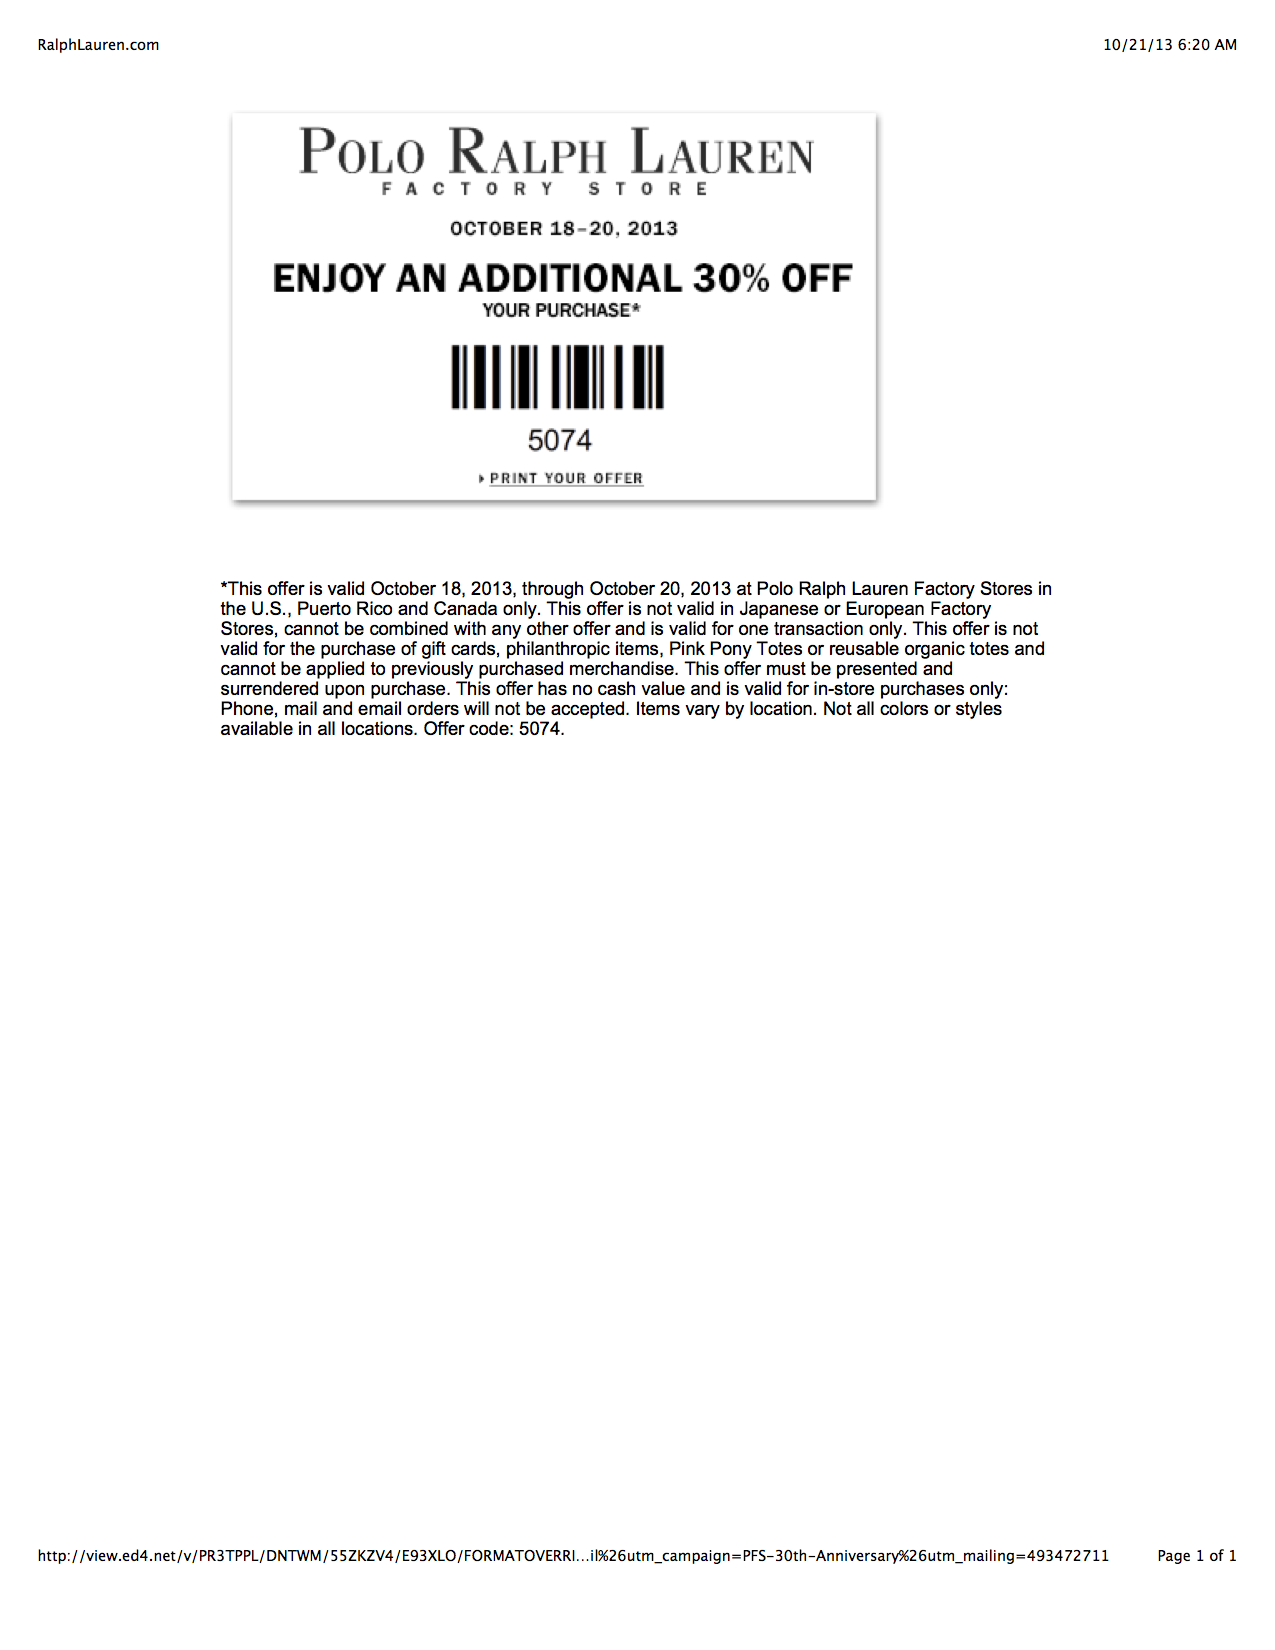 It is a photo of Magic Polo Factory Store Printable Coupons